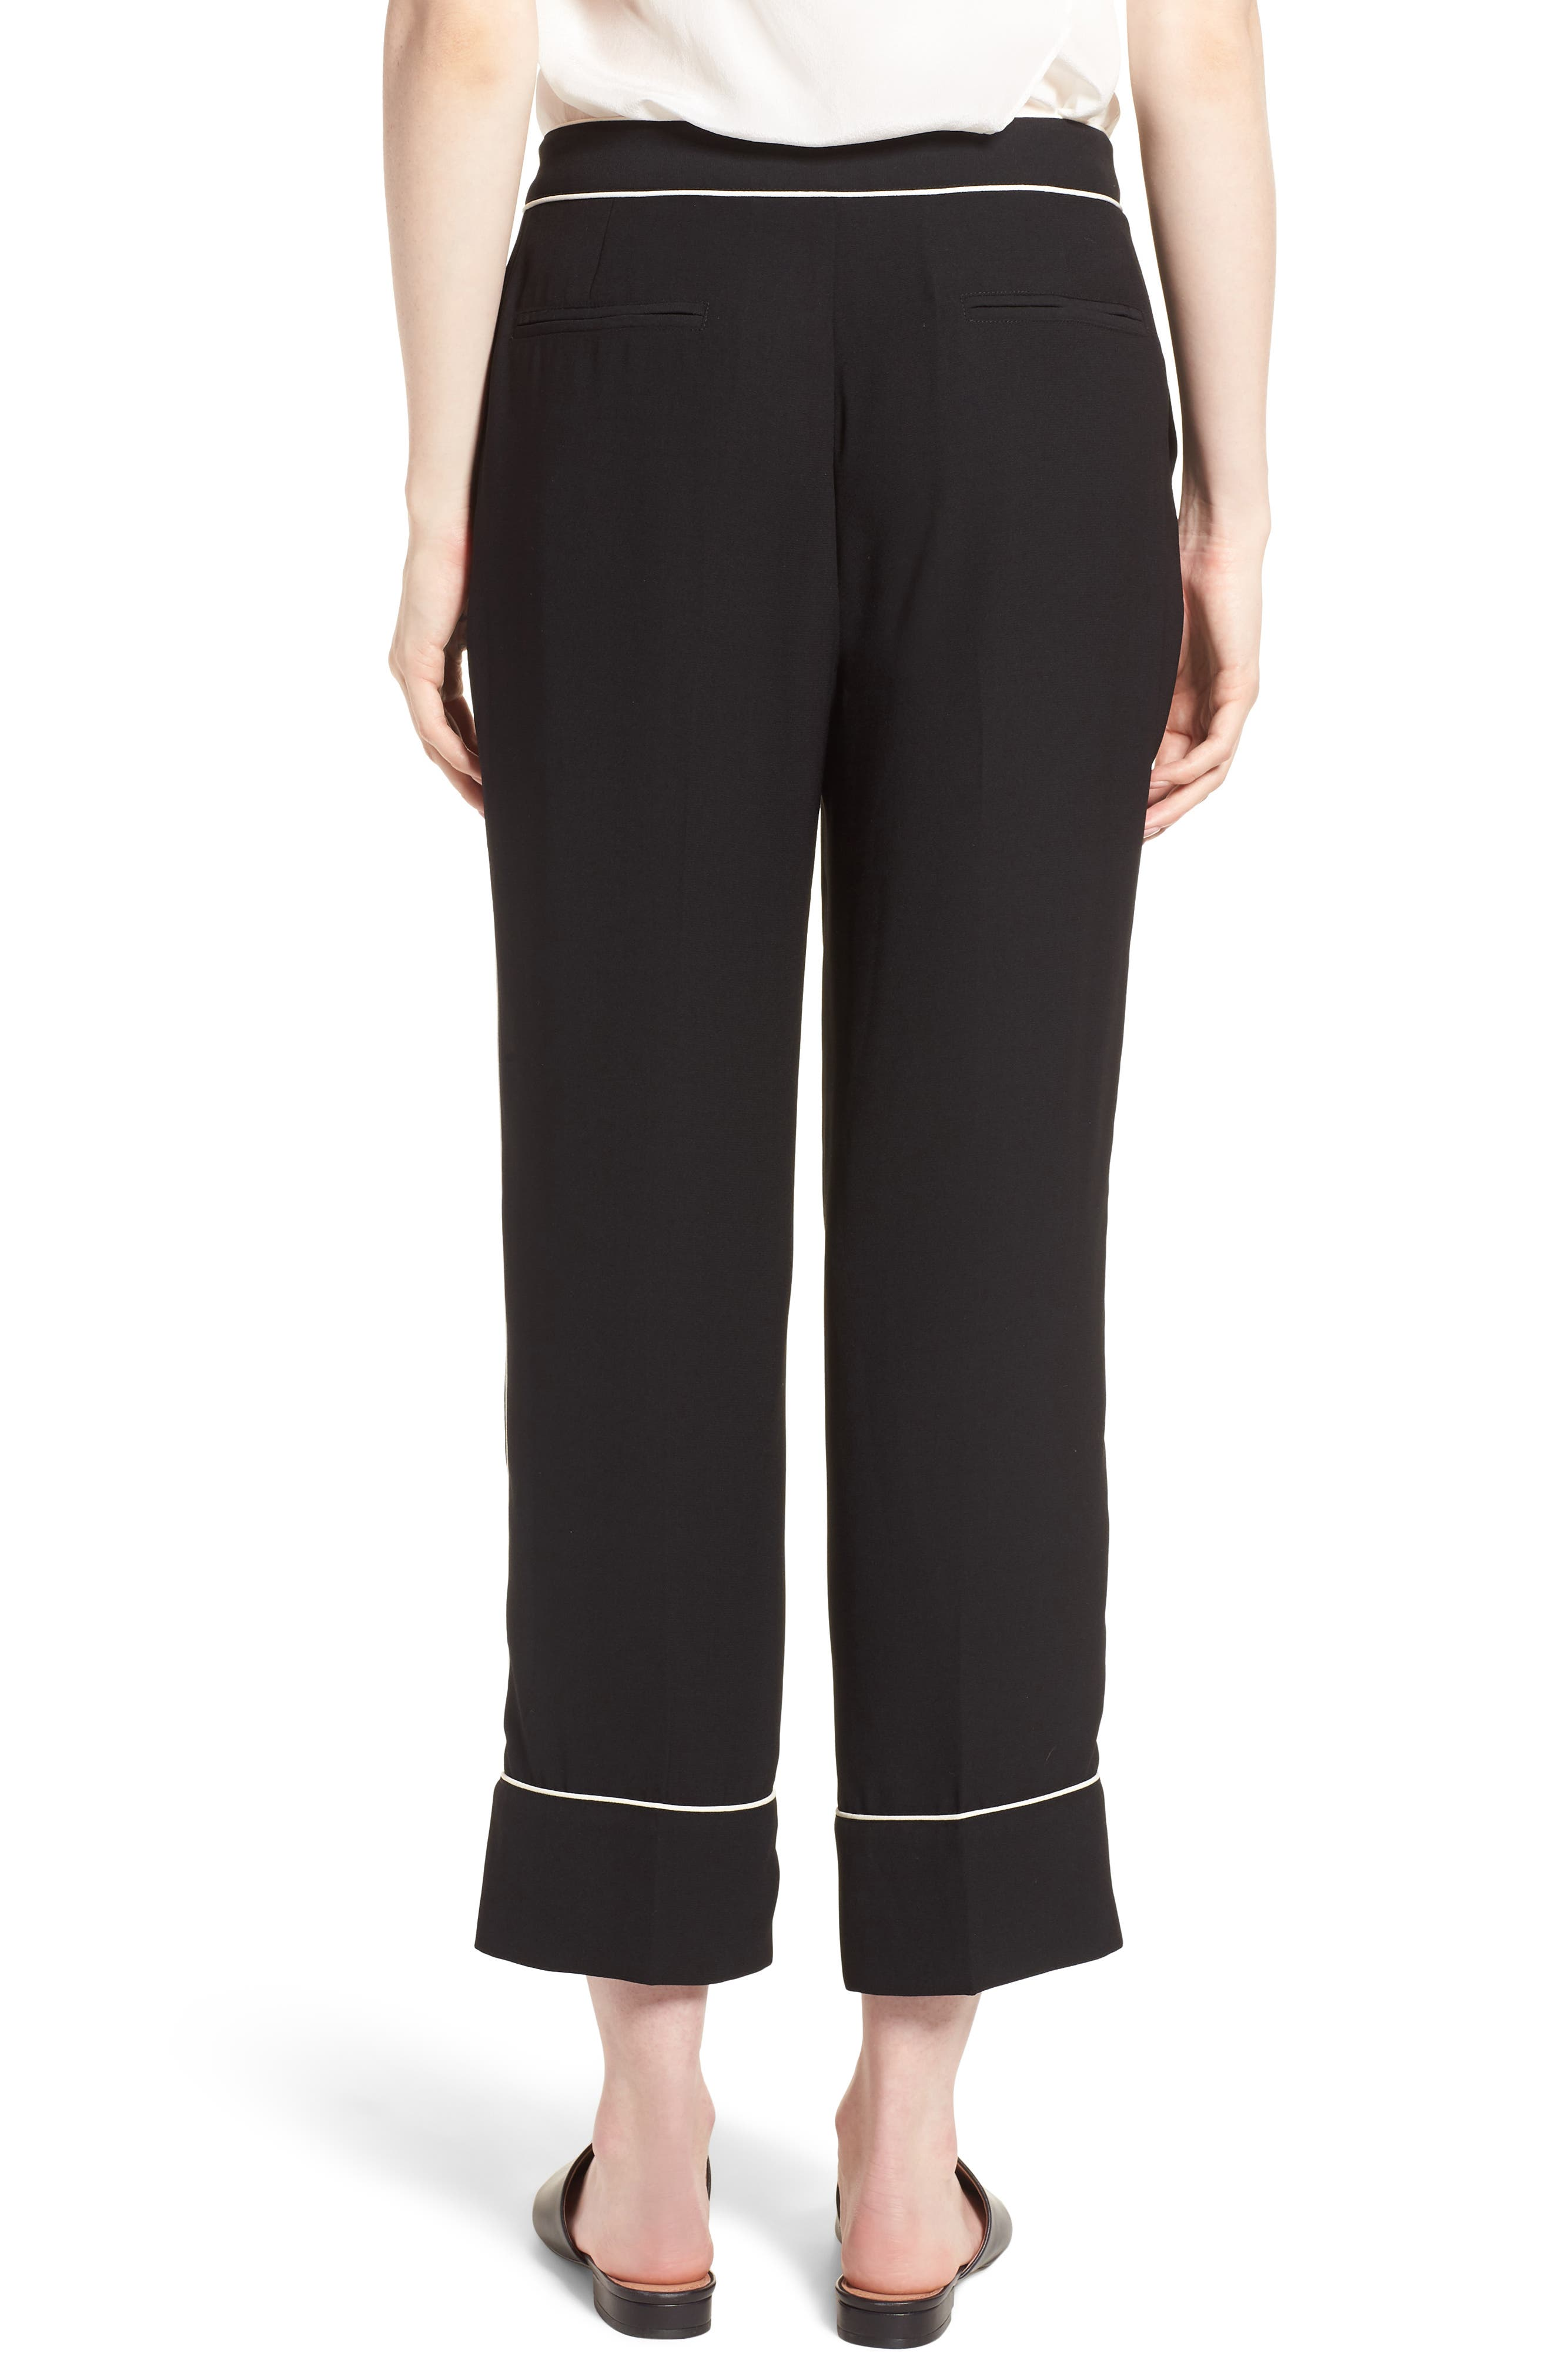 Ankle Pants,                             Alternate thumbnail 2, color,                             Black/ Bright White Piping